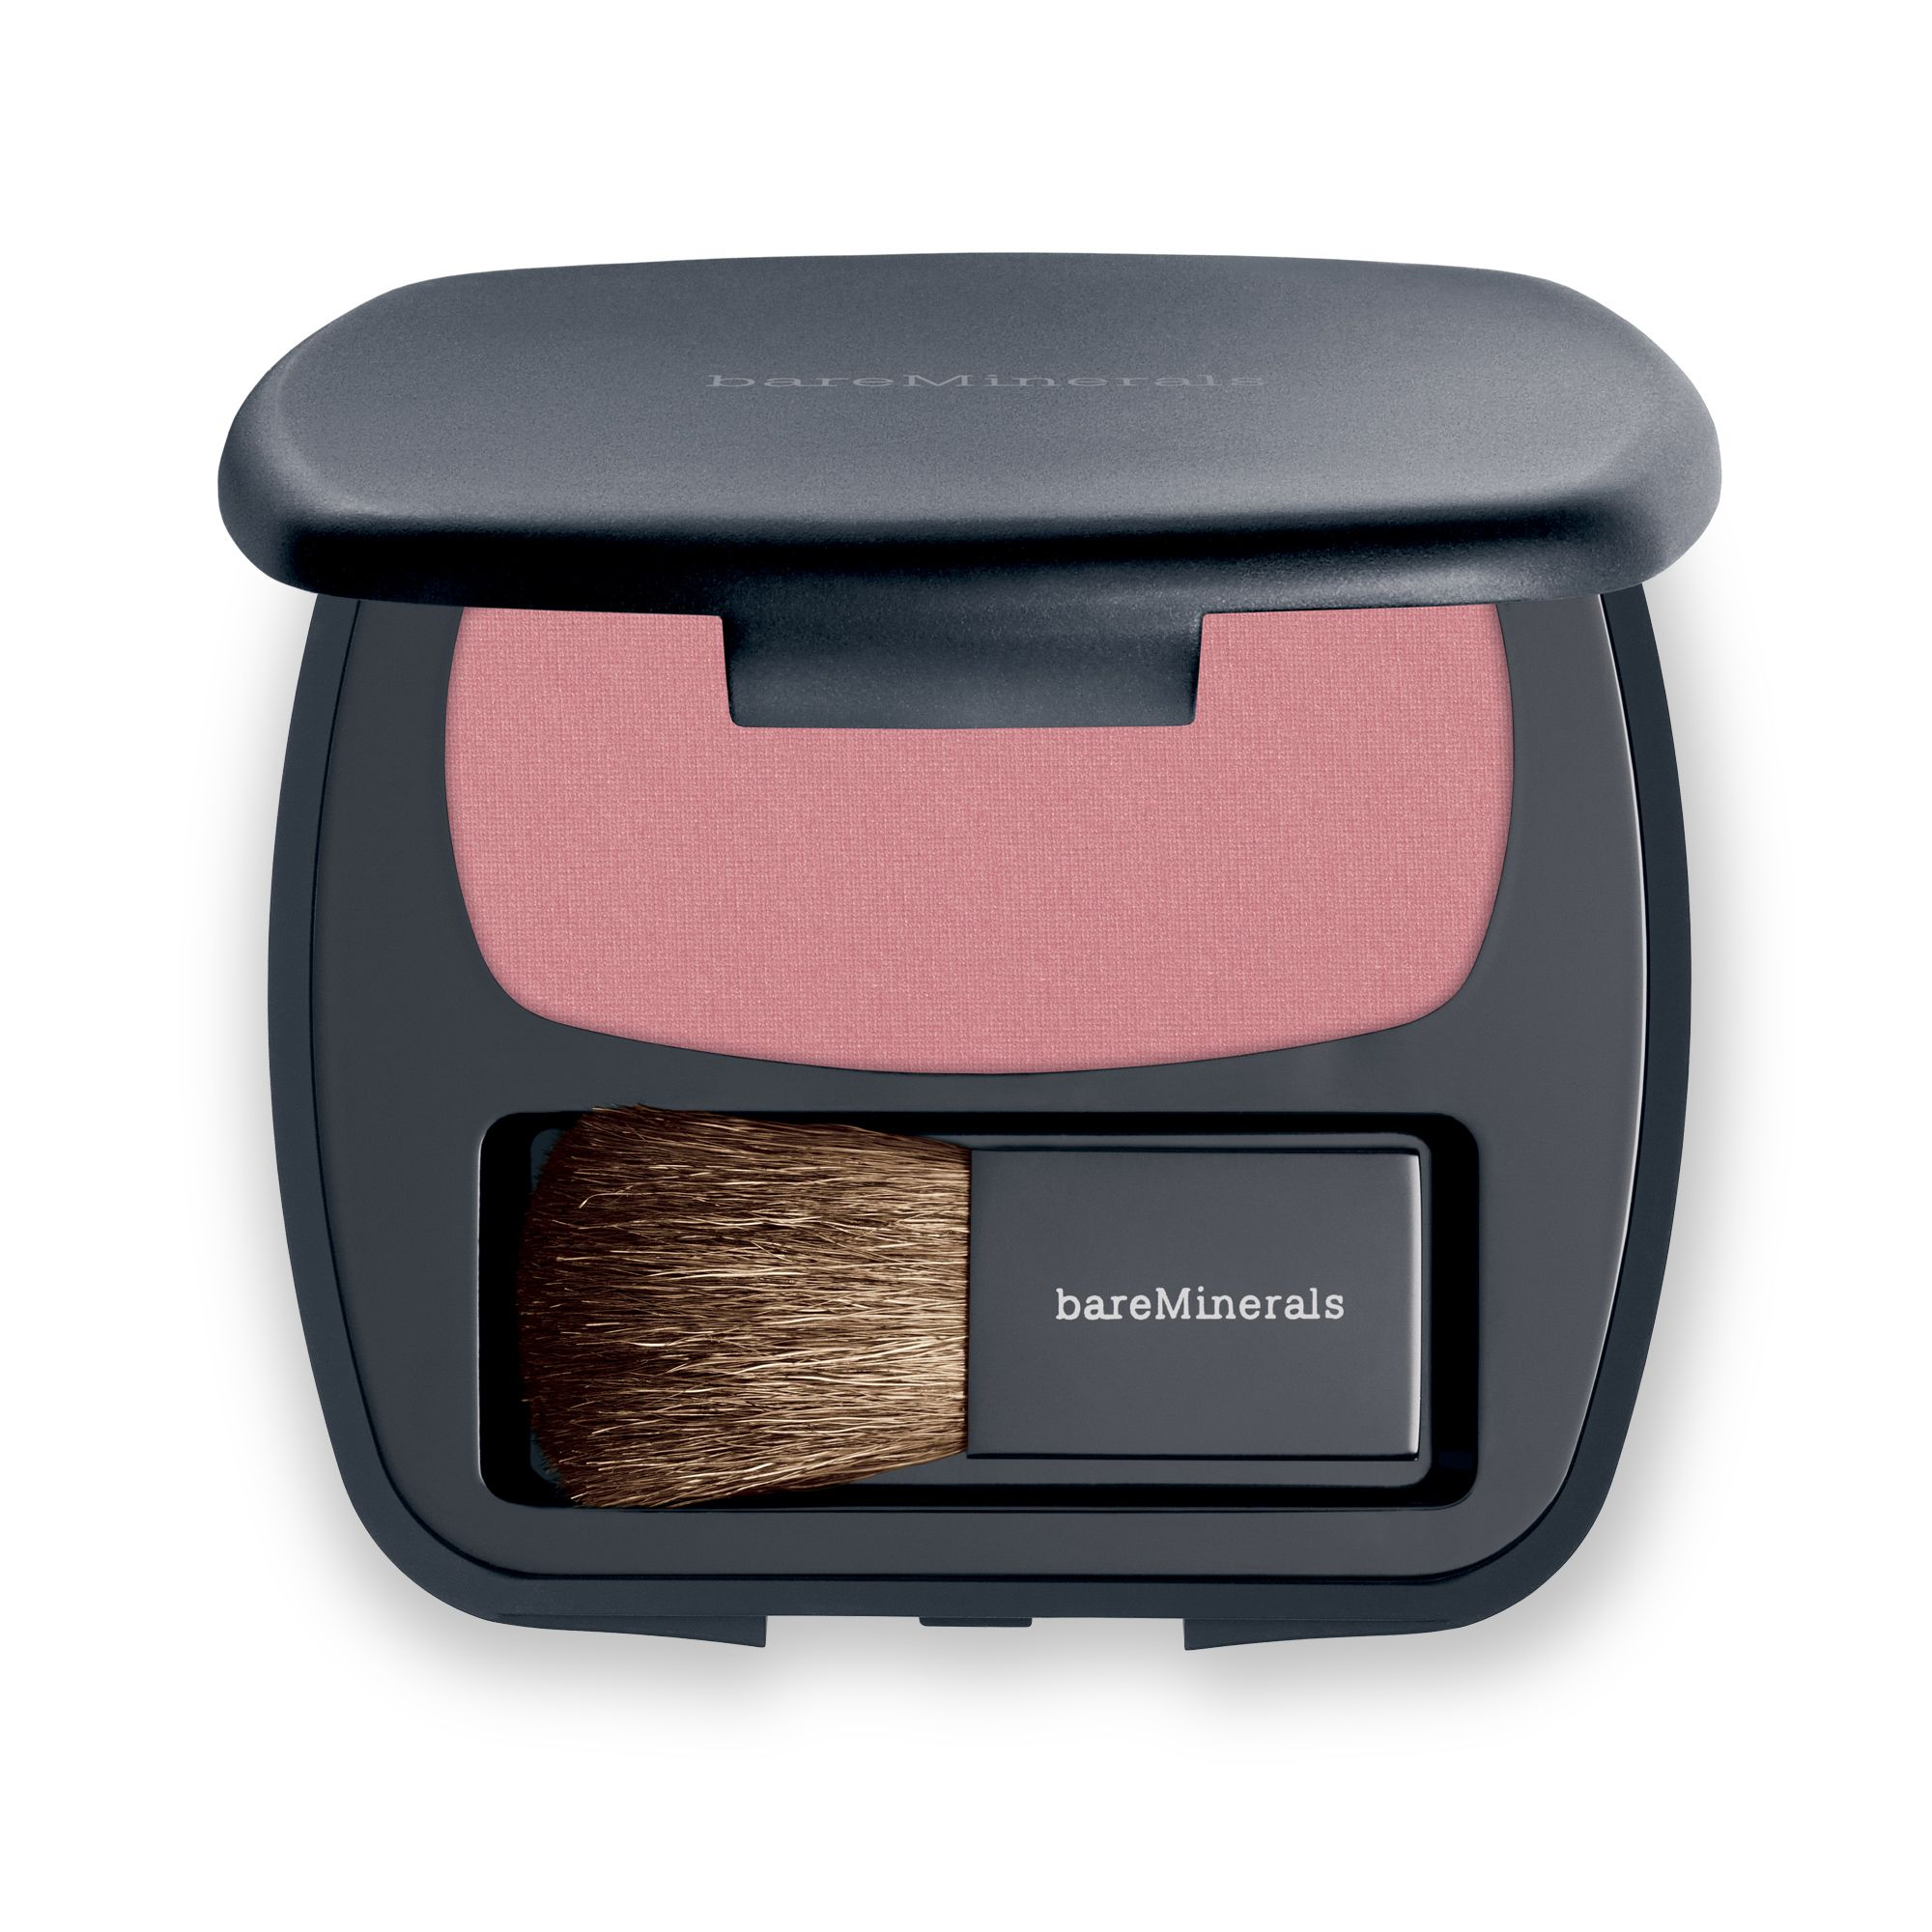 bareMinerals bareMinerals Ready Blush Secrets Out